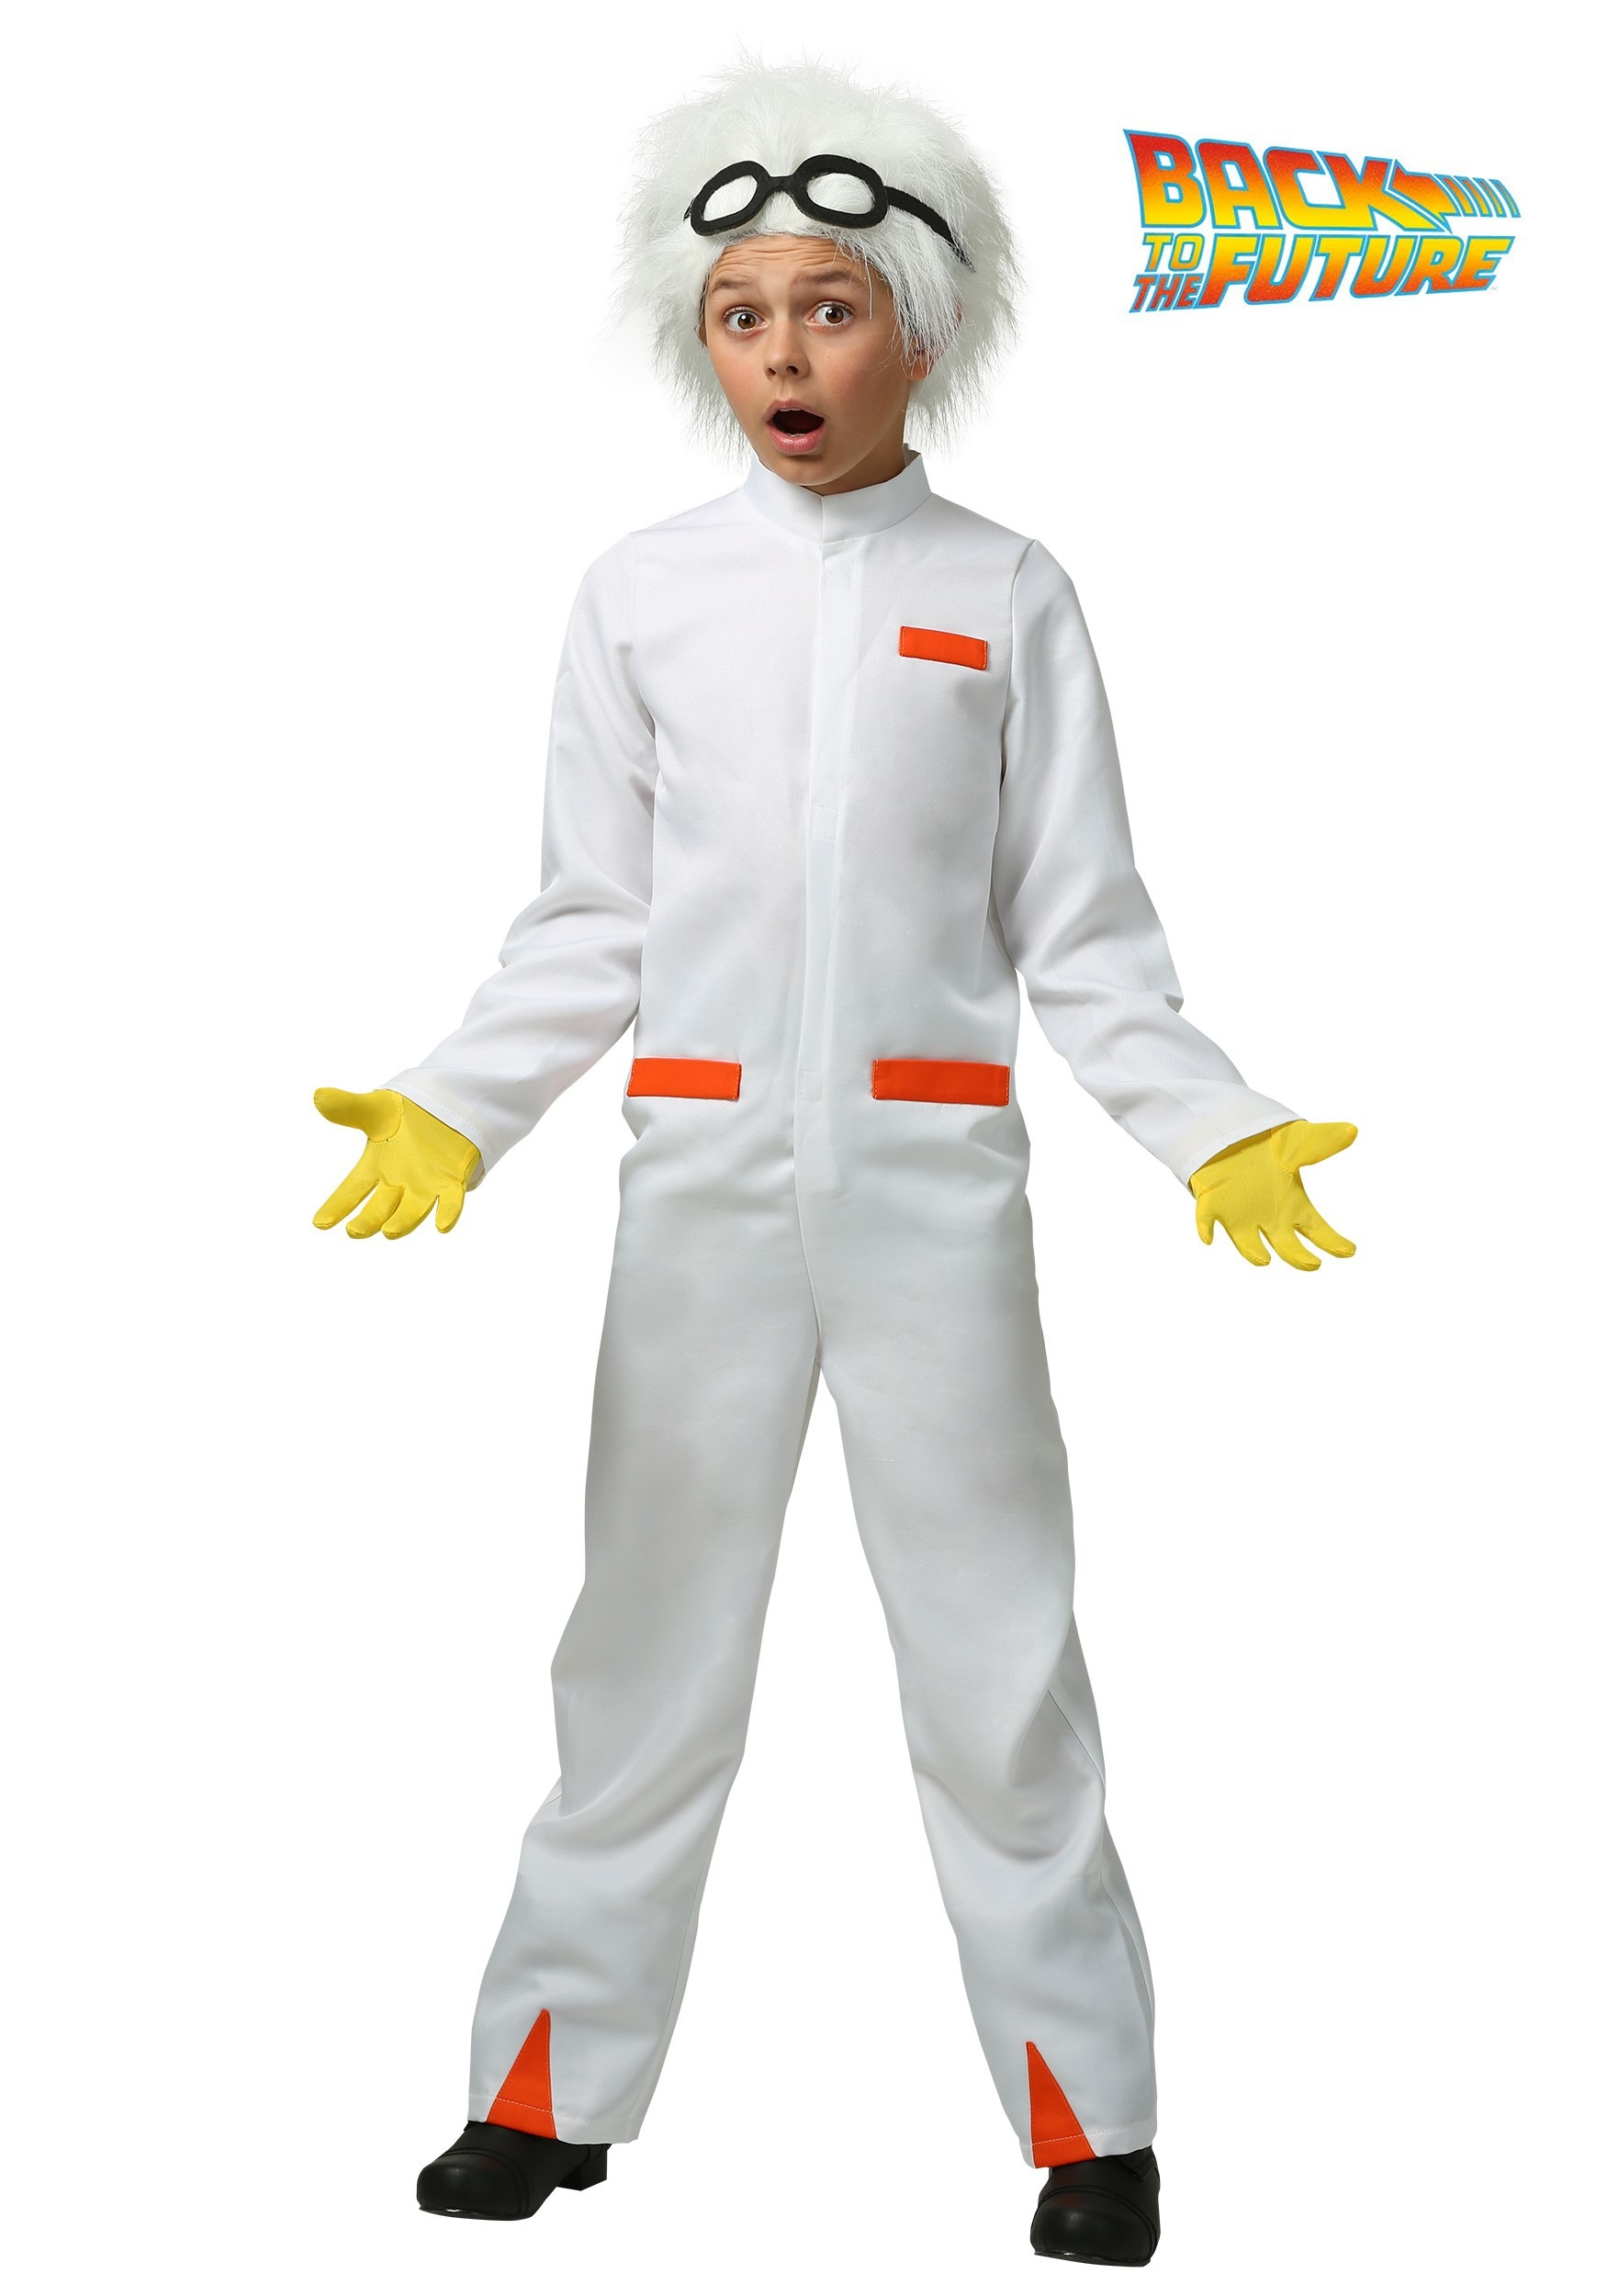 Fabuleux Back to the Future Doc Brown Costume for Kids FP24